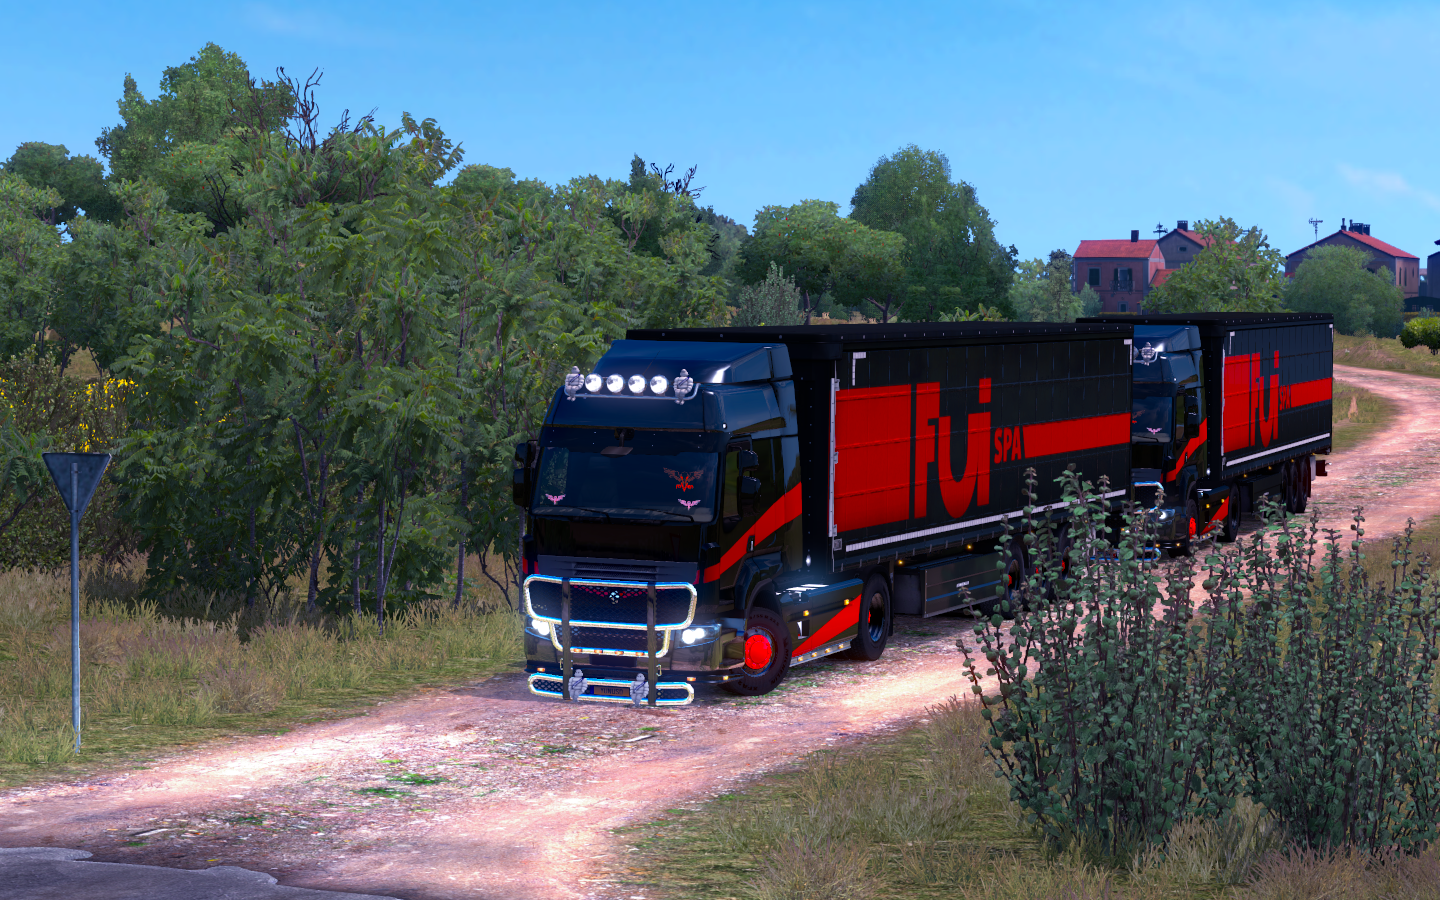 ets2_20190308_201805_00.png